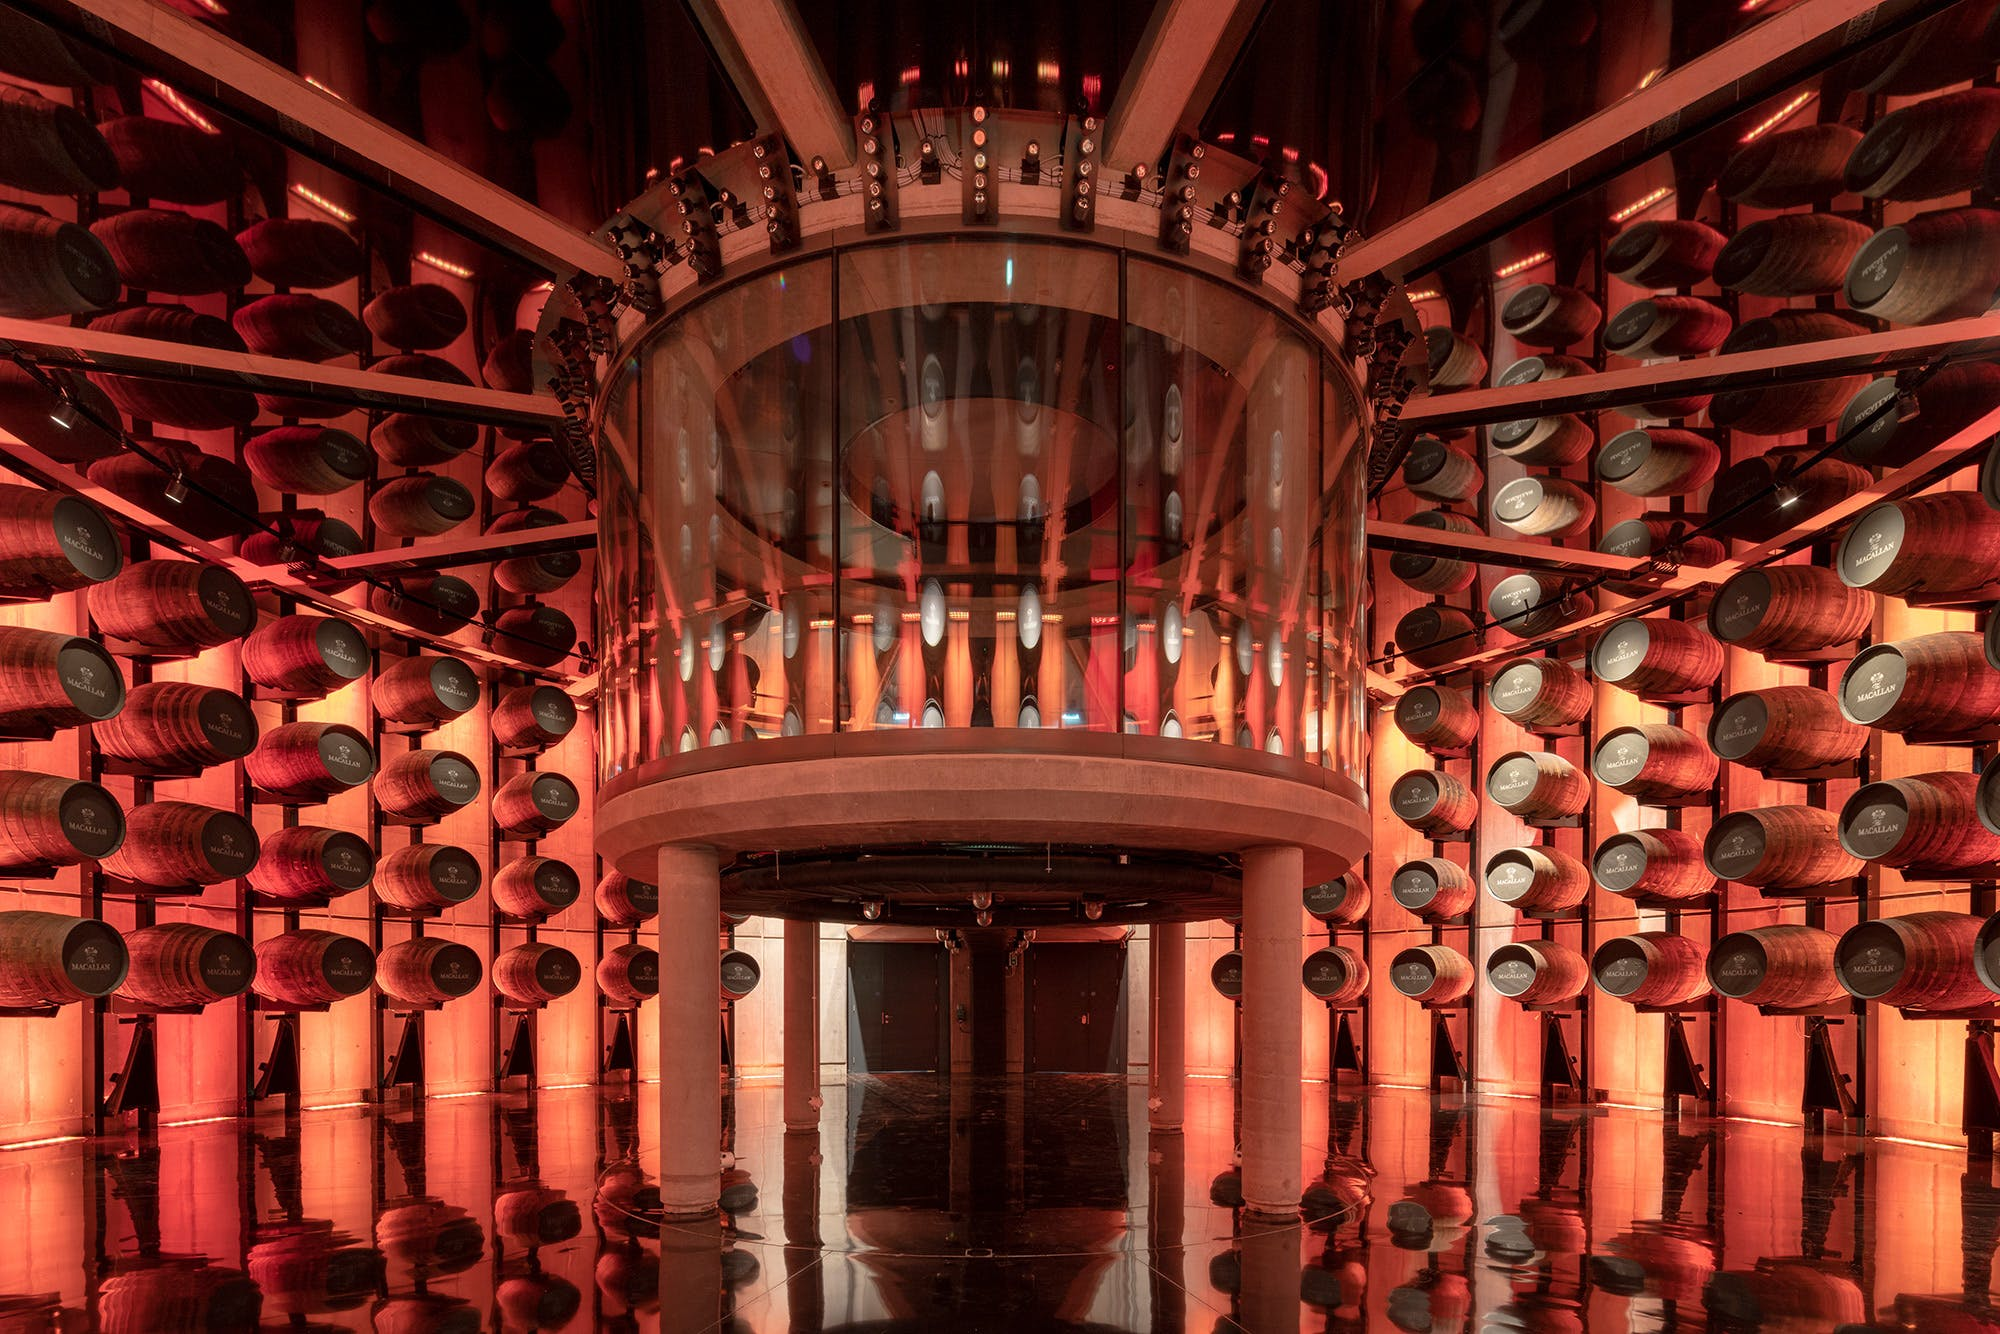 Interior of a room full of whiskey barrels, a project on the Stirling Prize shortlist